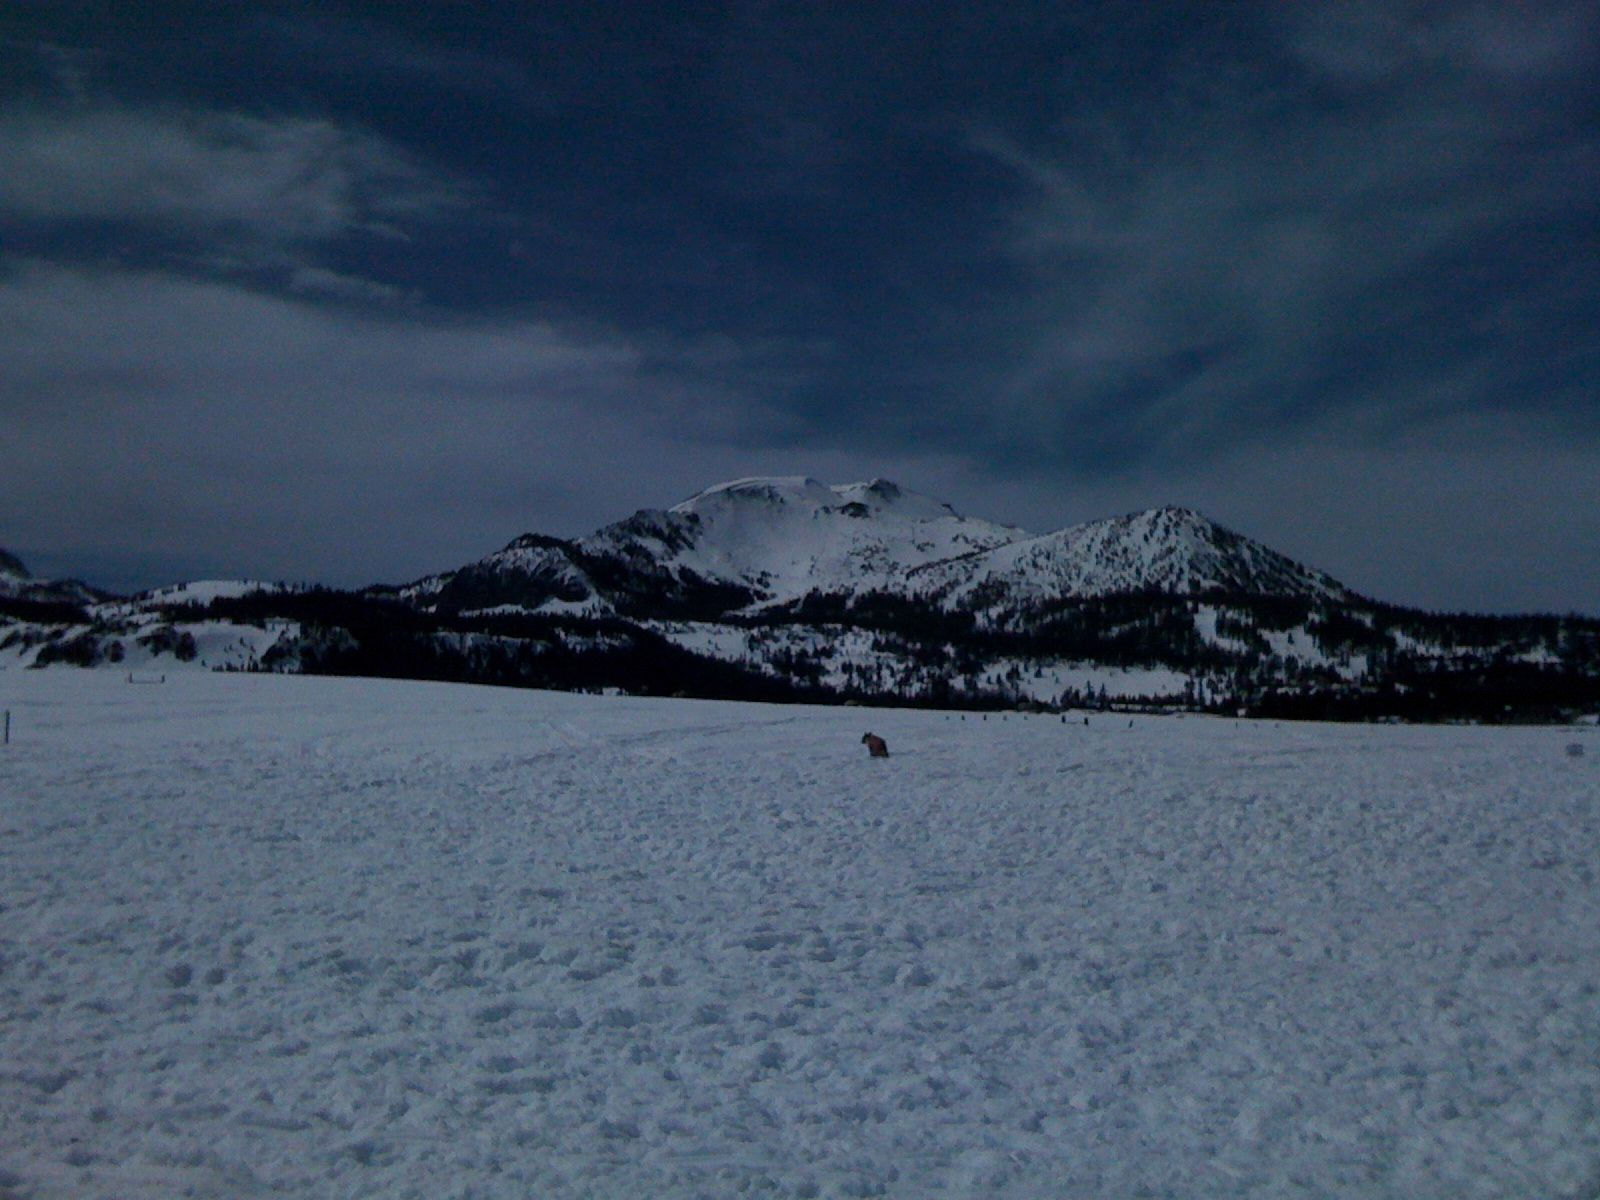 Sherwin Meadows @ Mammoth Lakes with Mammoth Mt in the background